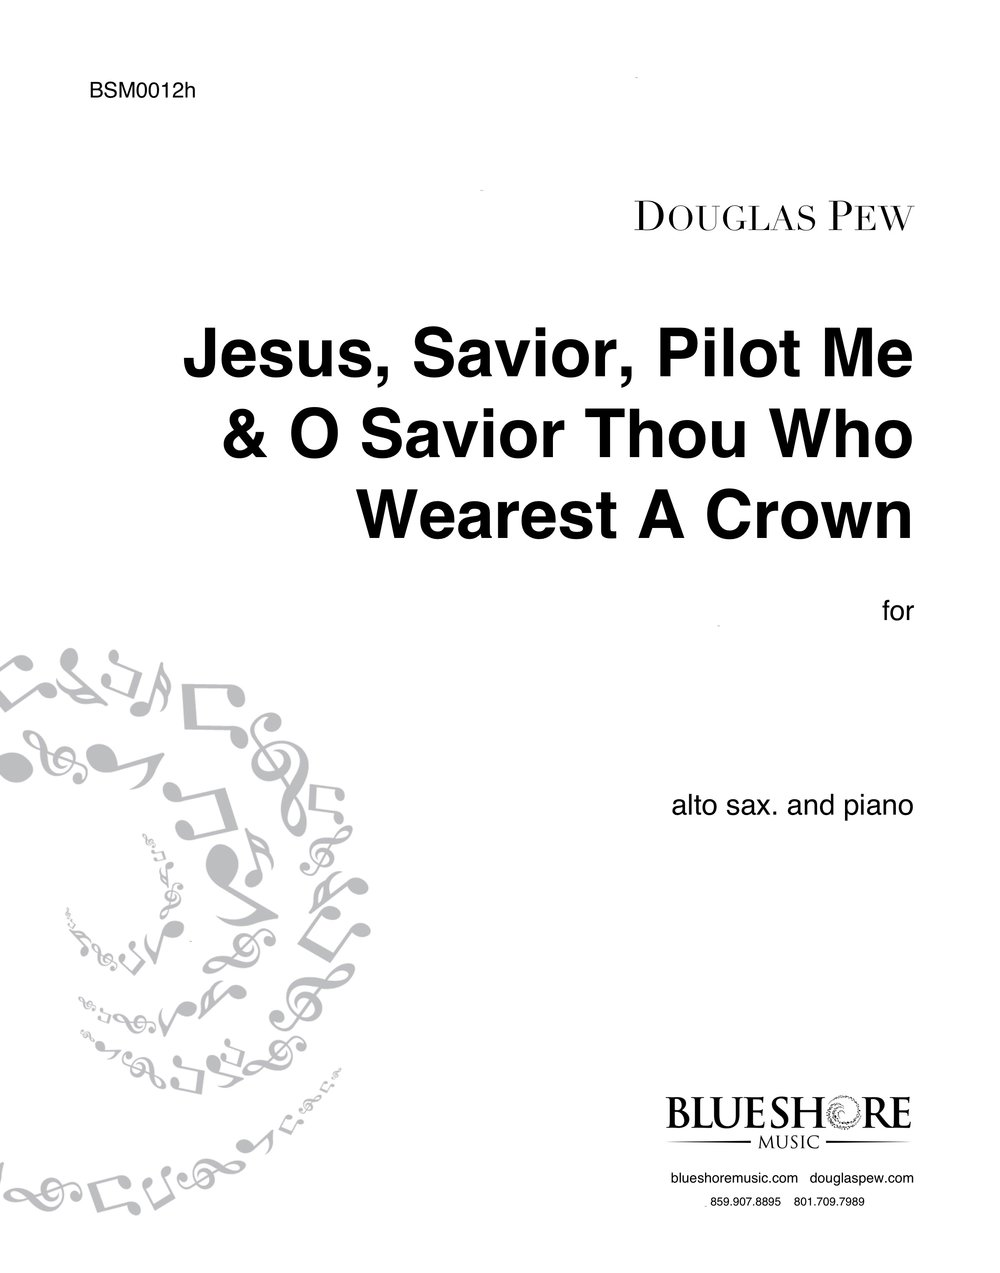 Jesus, Savior, Pilot Me and O Savior, Thou Who Wearest A Crown